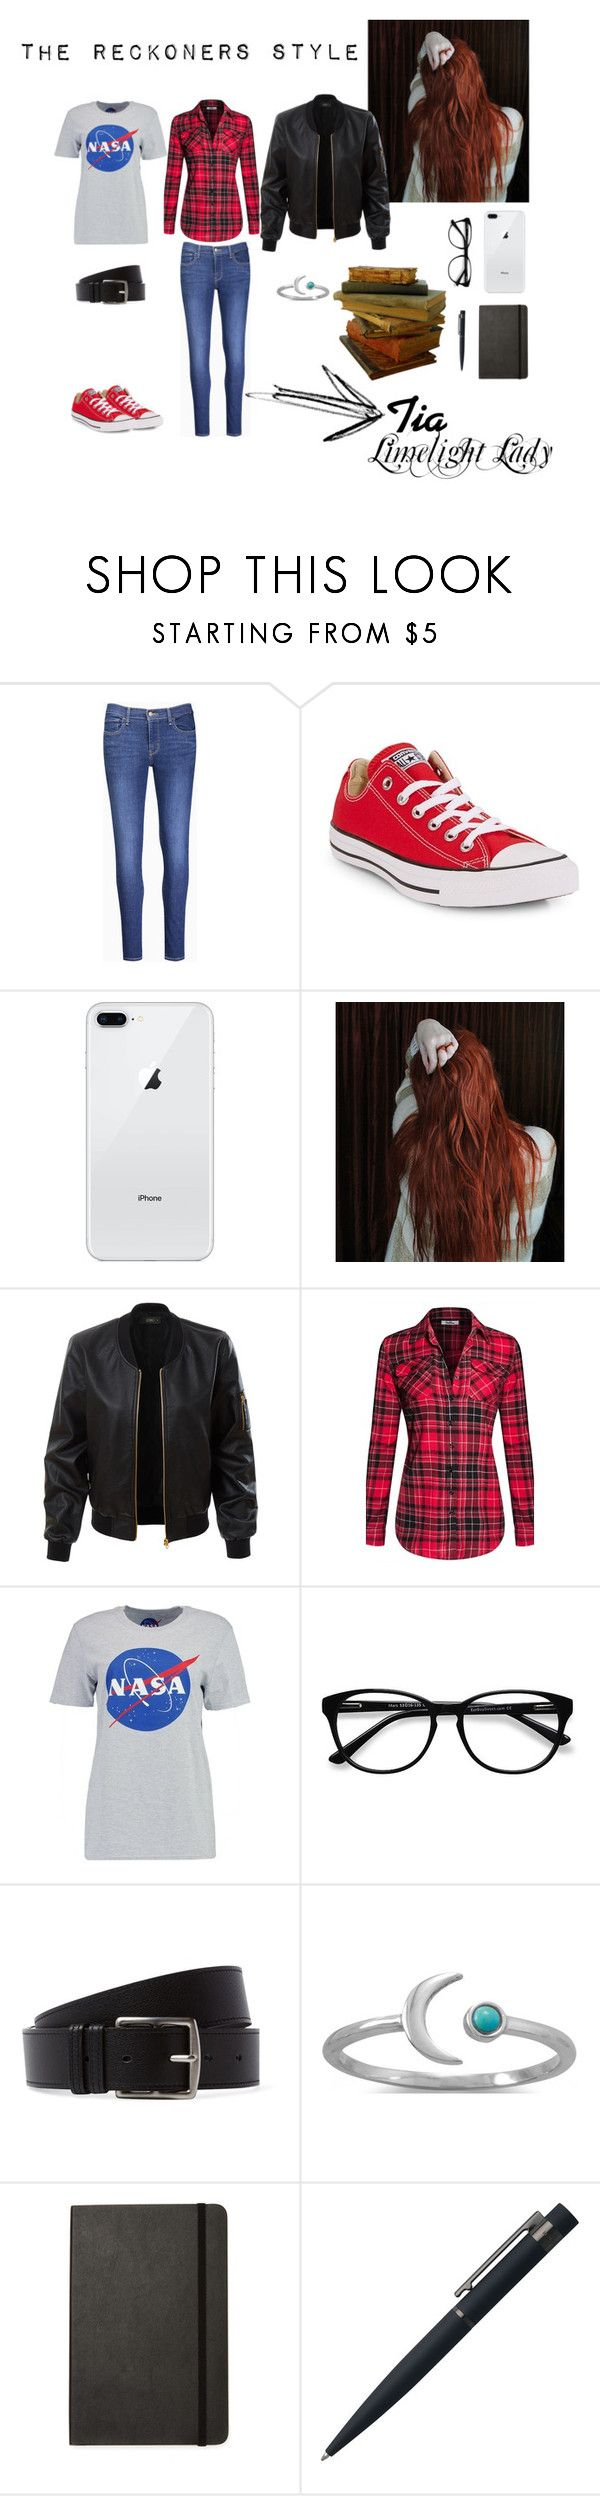 """The Reckoners Style: Tia"" by estrellesdpaper ❤ liked on Polyvore featuring Levi's, Converse, LE3NO, Boohoo, EyeBuyDirect.com, Hermès, BillyTheTree, Moleskine and John Lewis"